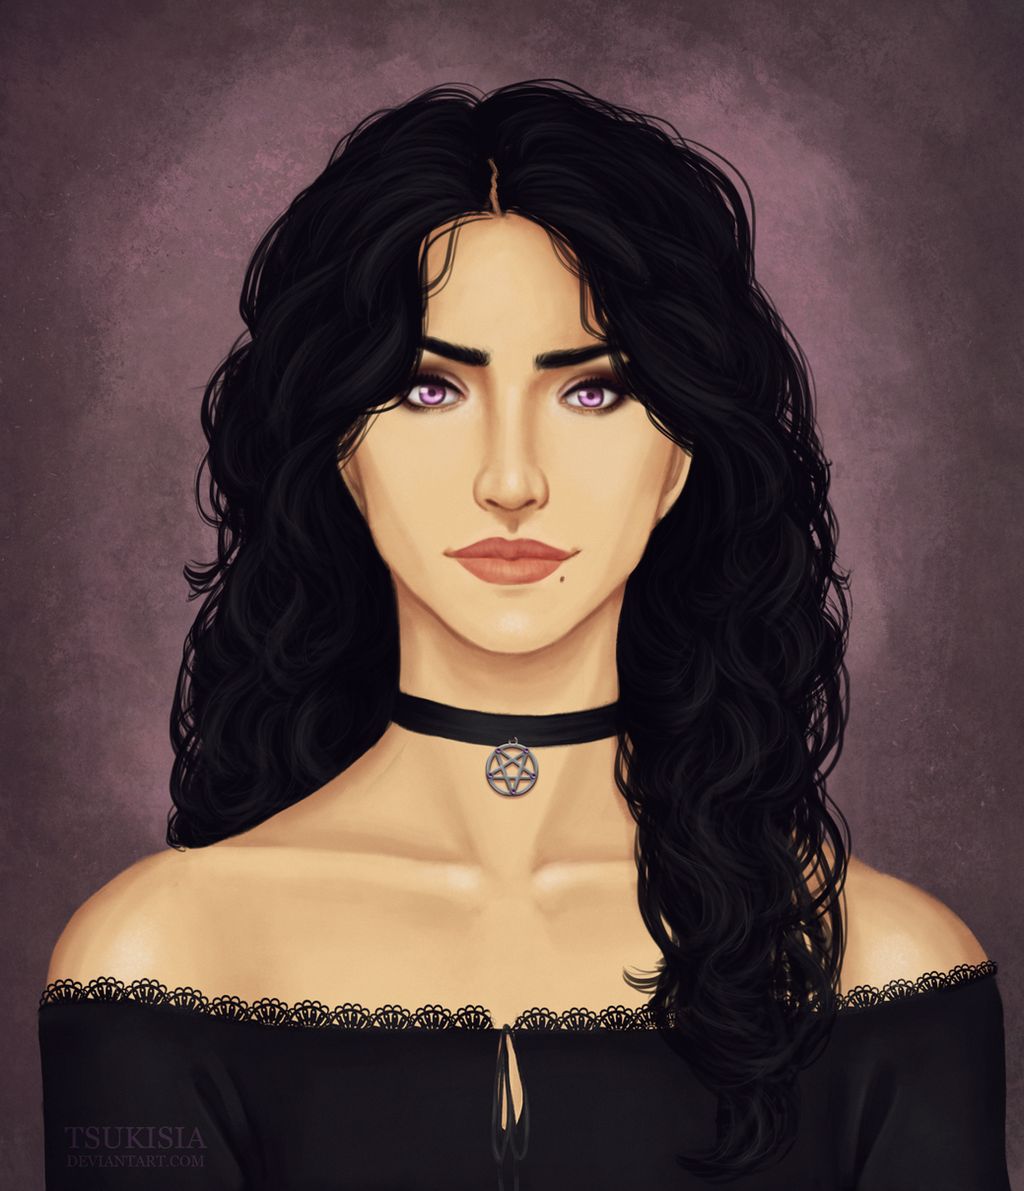 https://img00.deviantart.net/efe6/i/2018/205/a/8/yennefer_by_tsukisia-dci6432.png